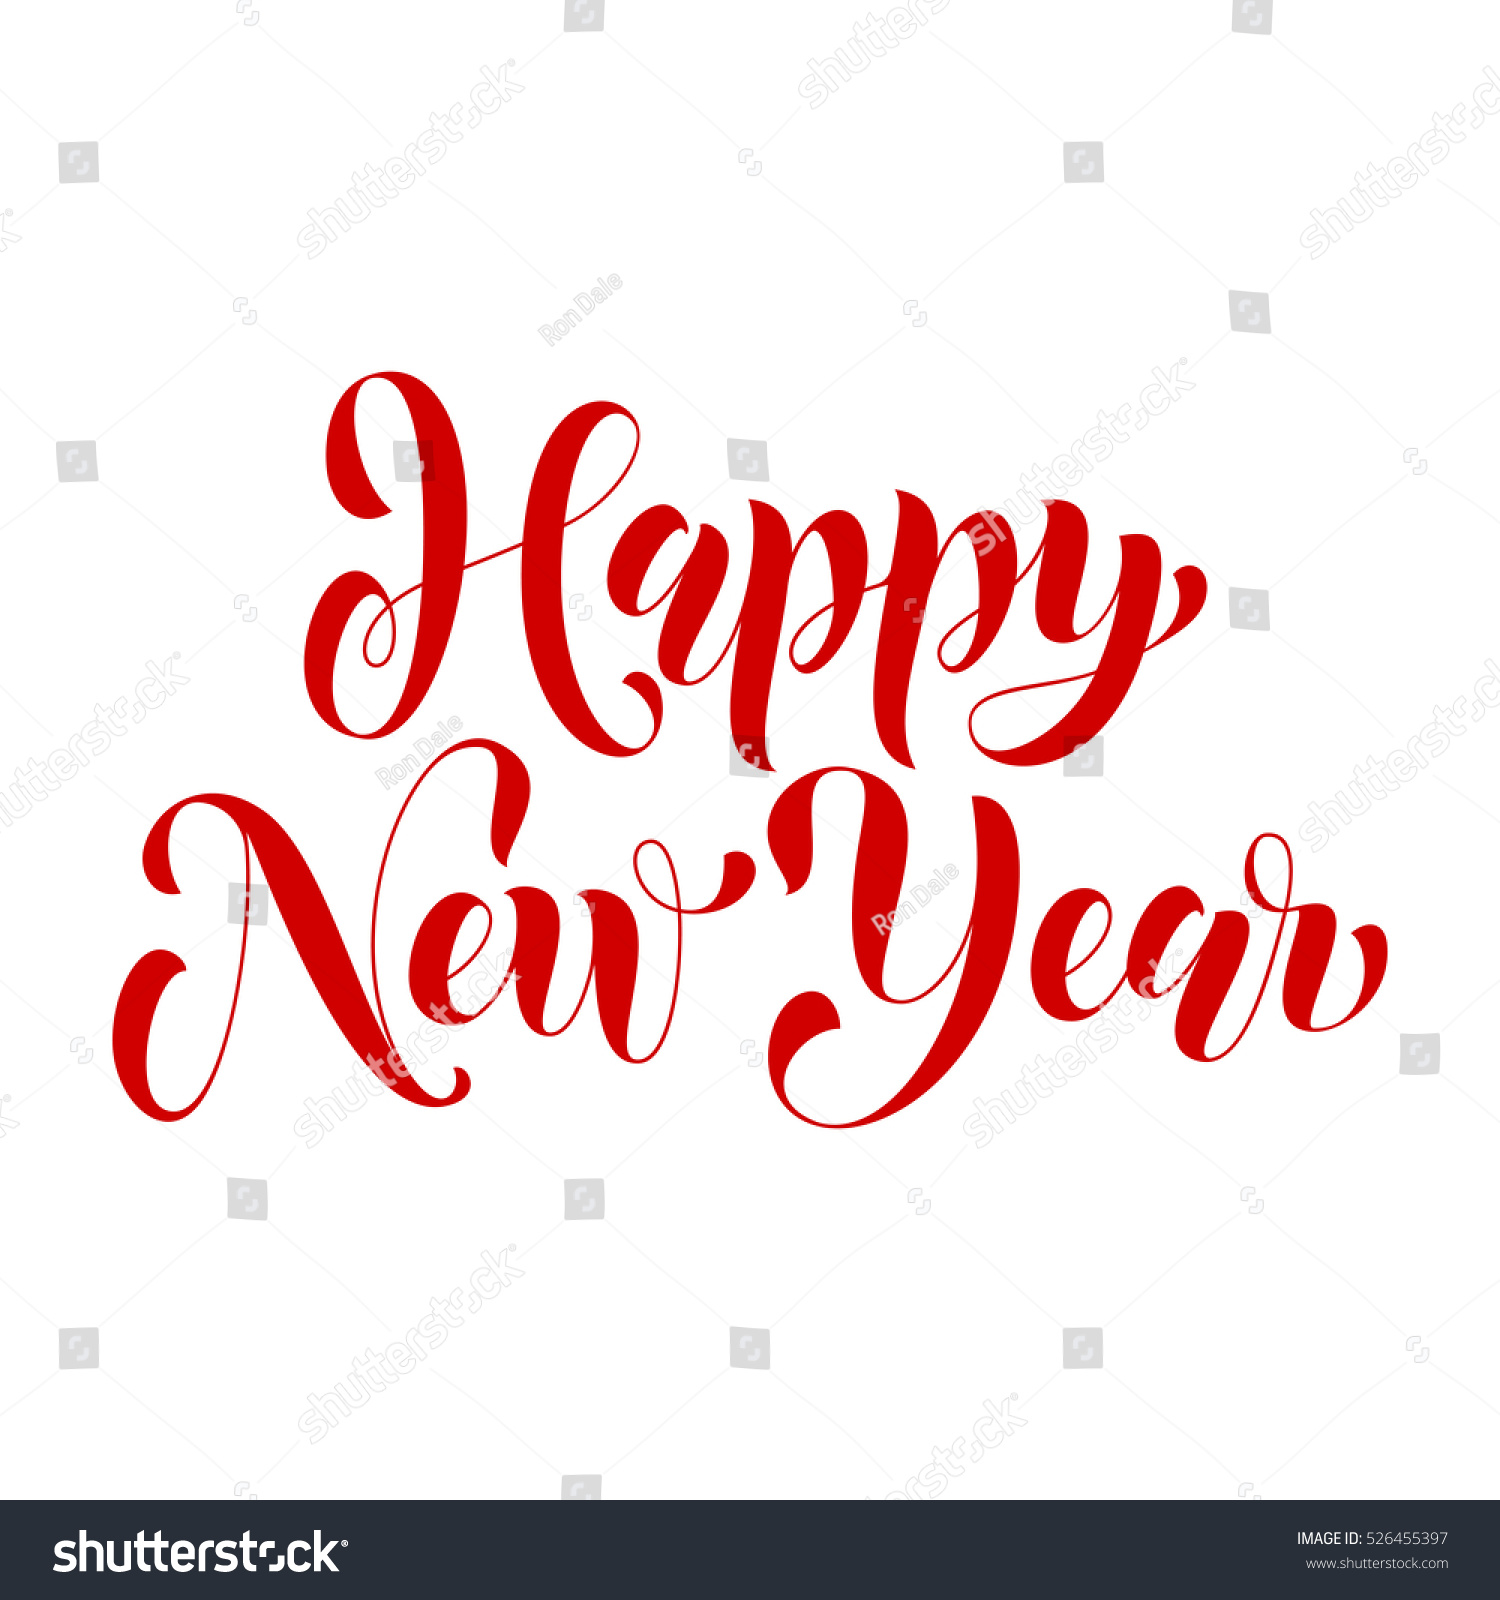 lettering design for happy new year greeting card template calligraphic style font type for banner